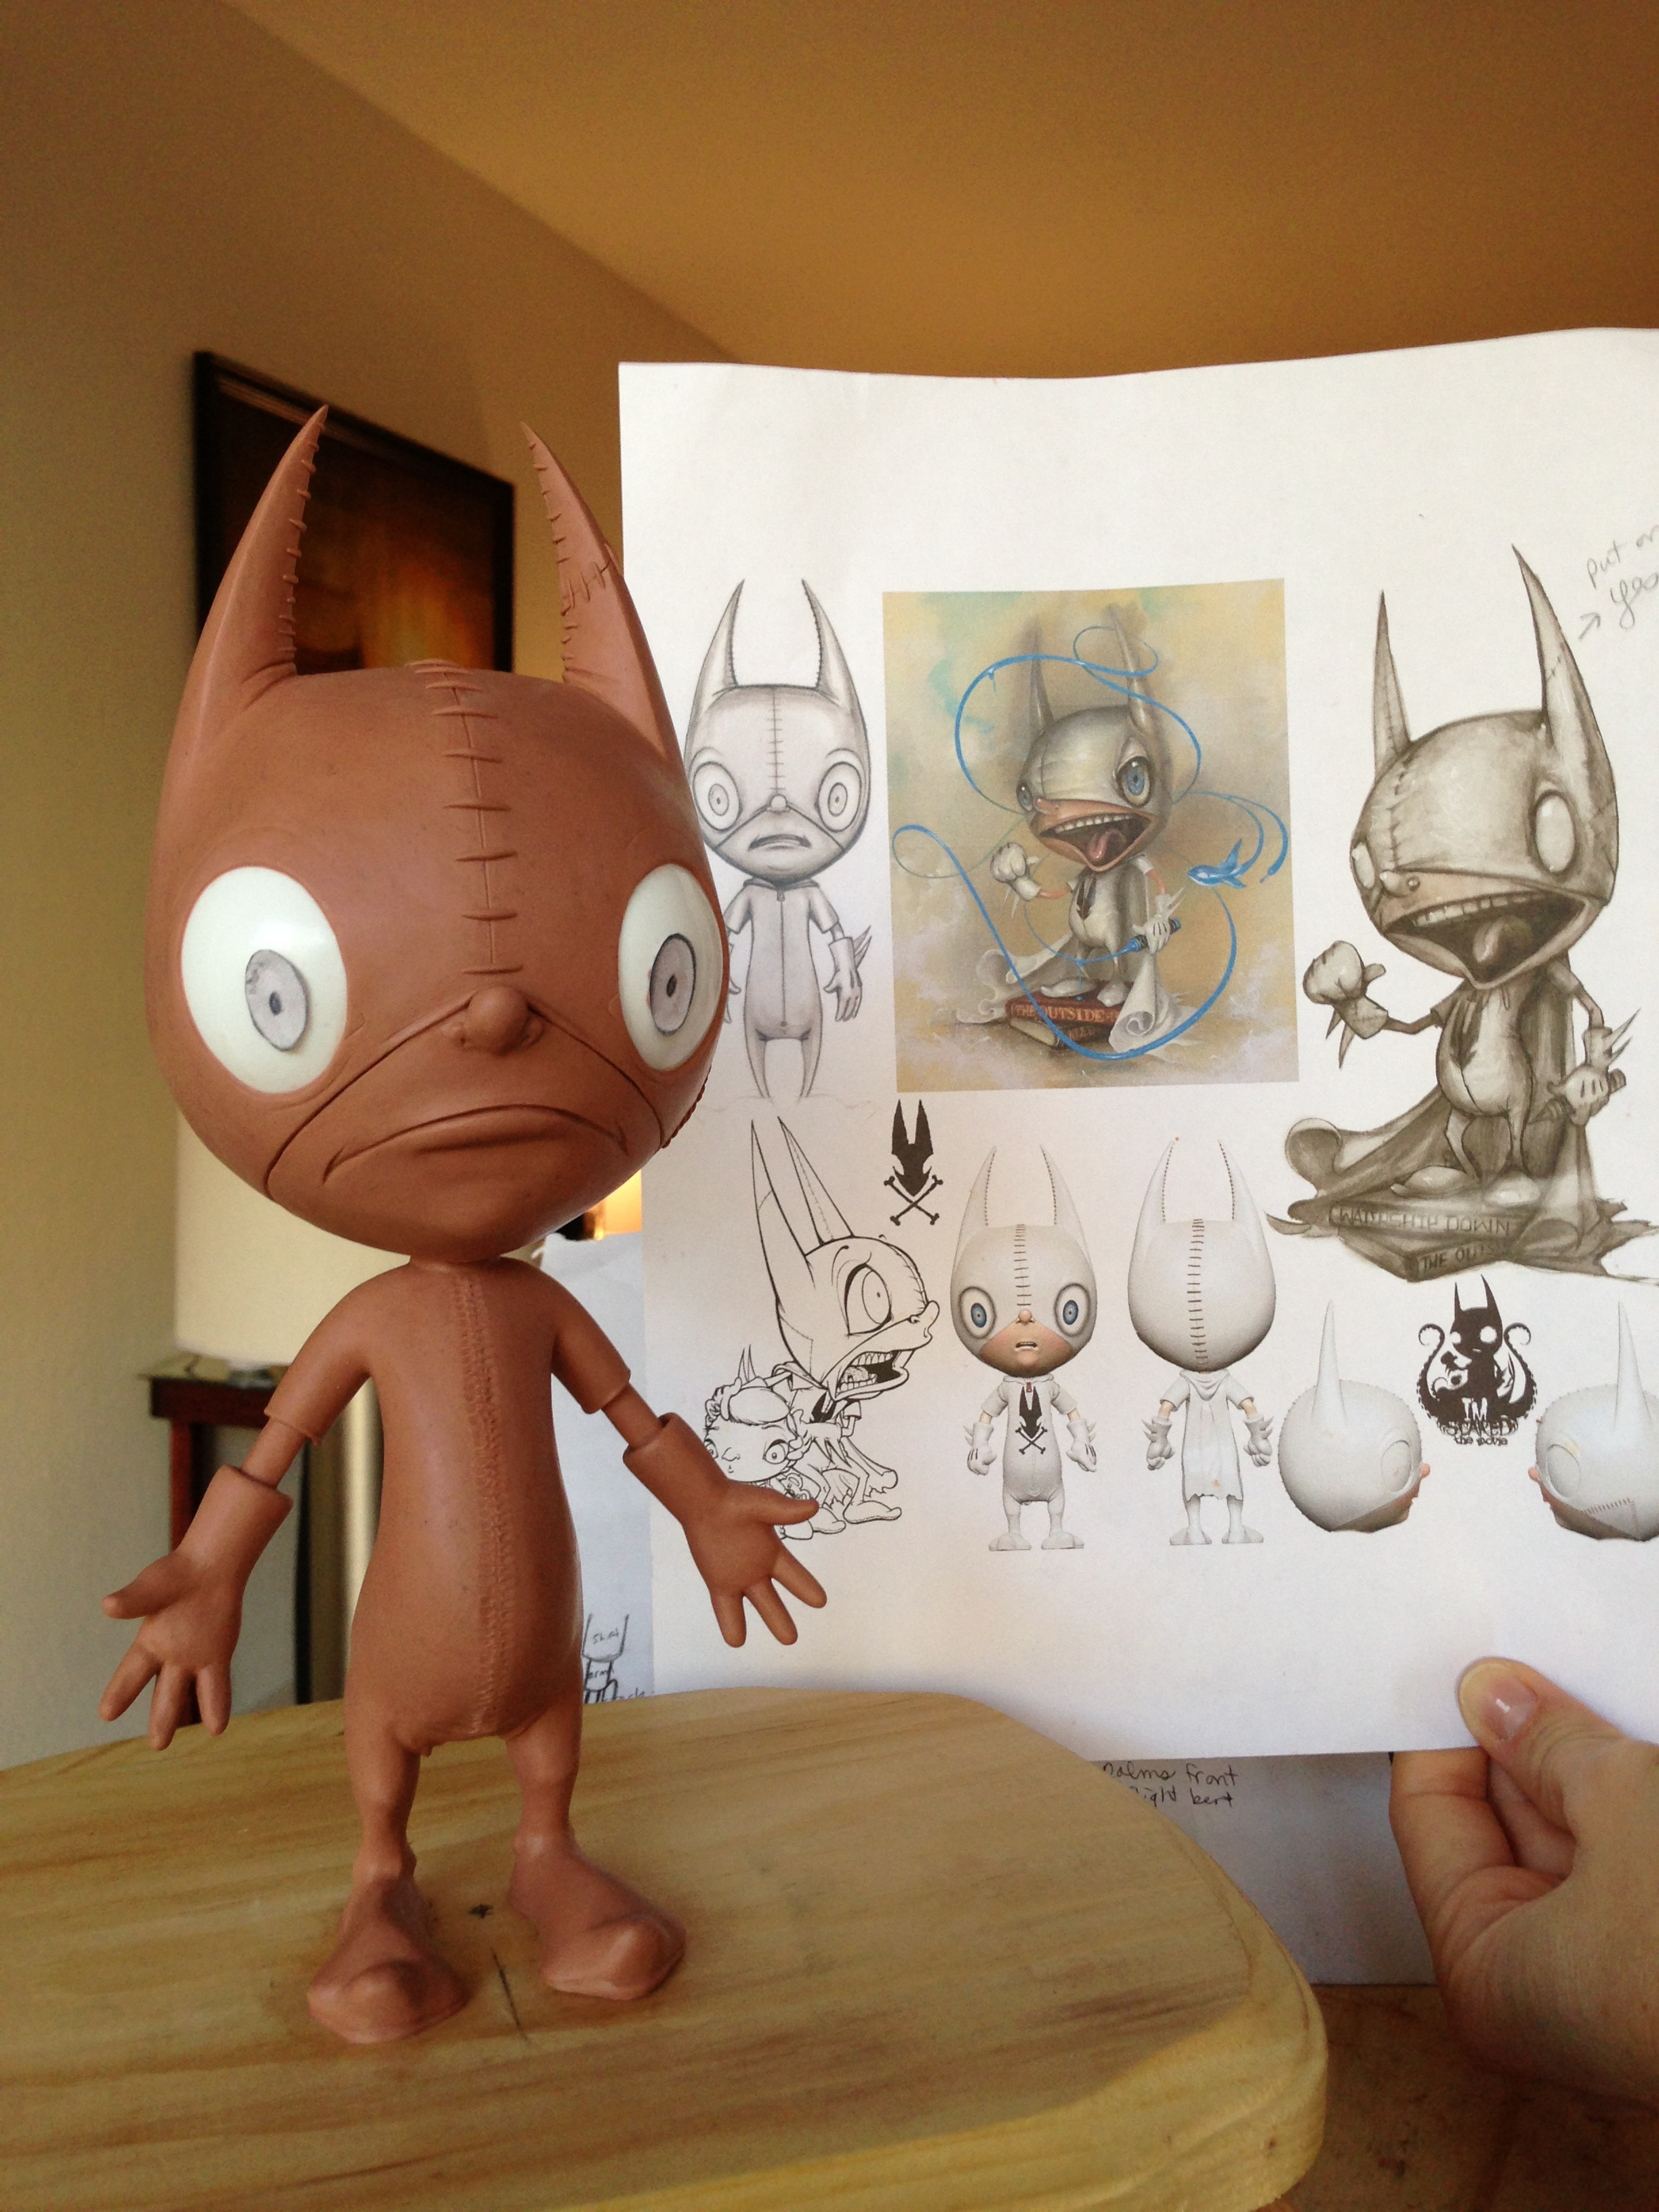 Ralf's sculpt compared to sketches and the vinyl toy design.